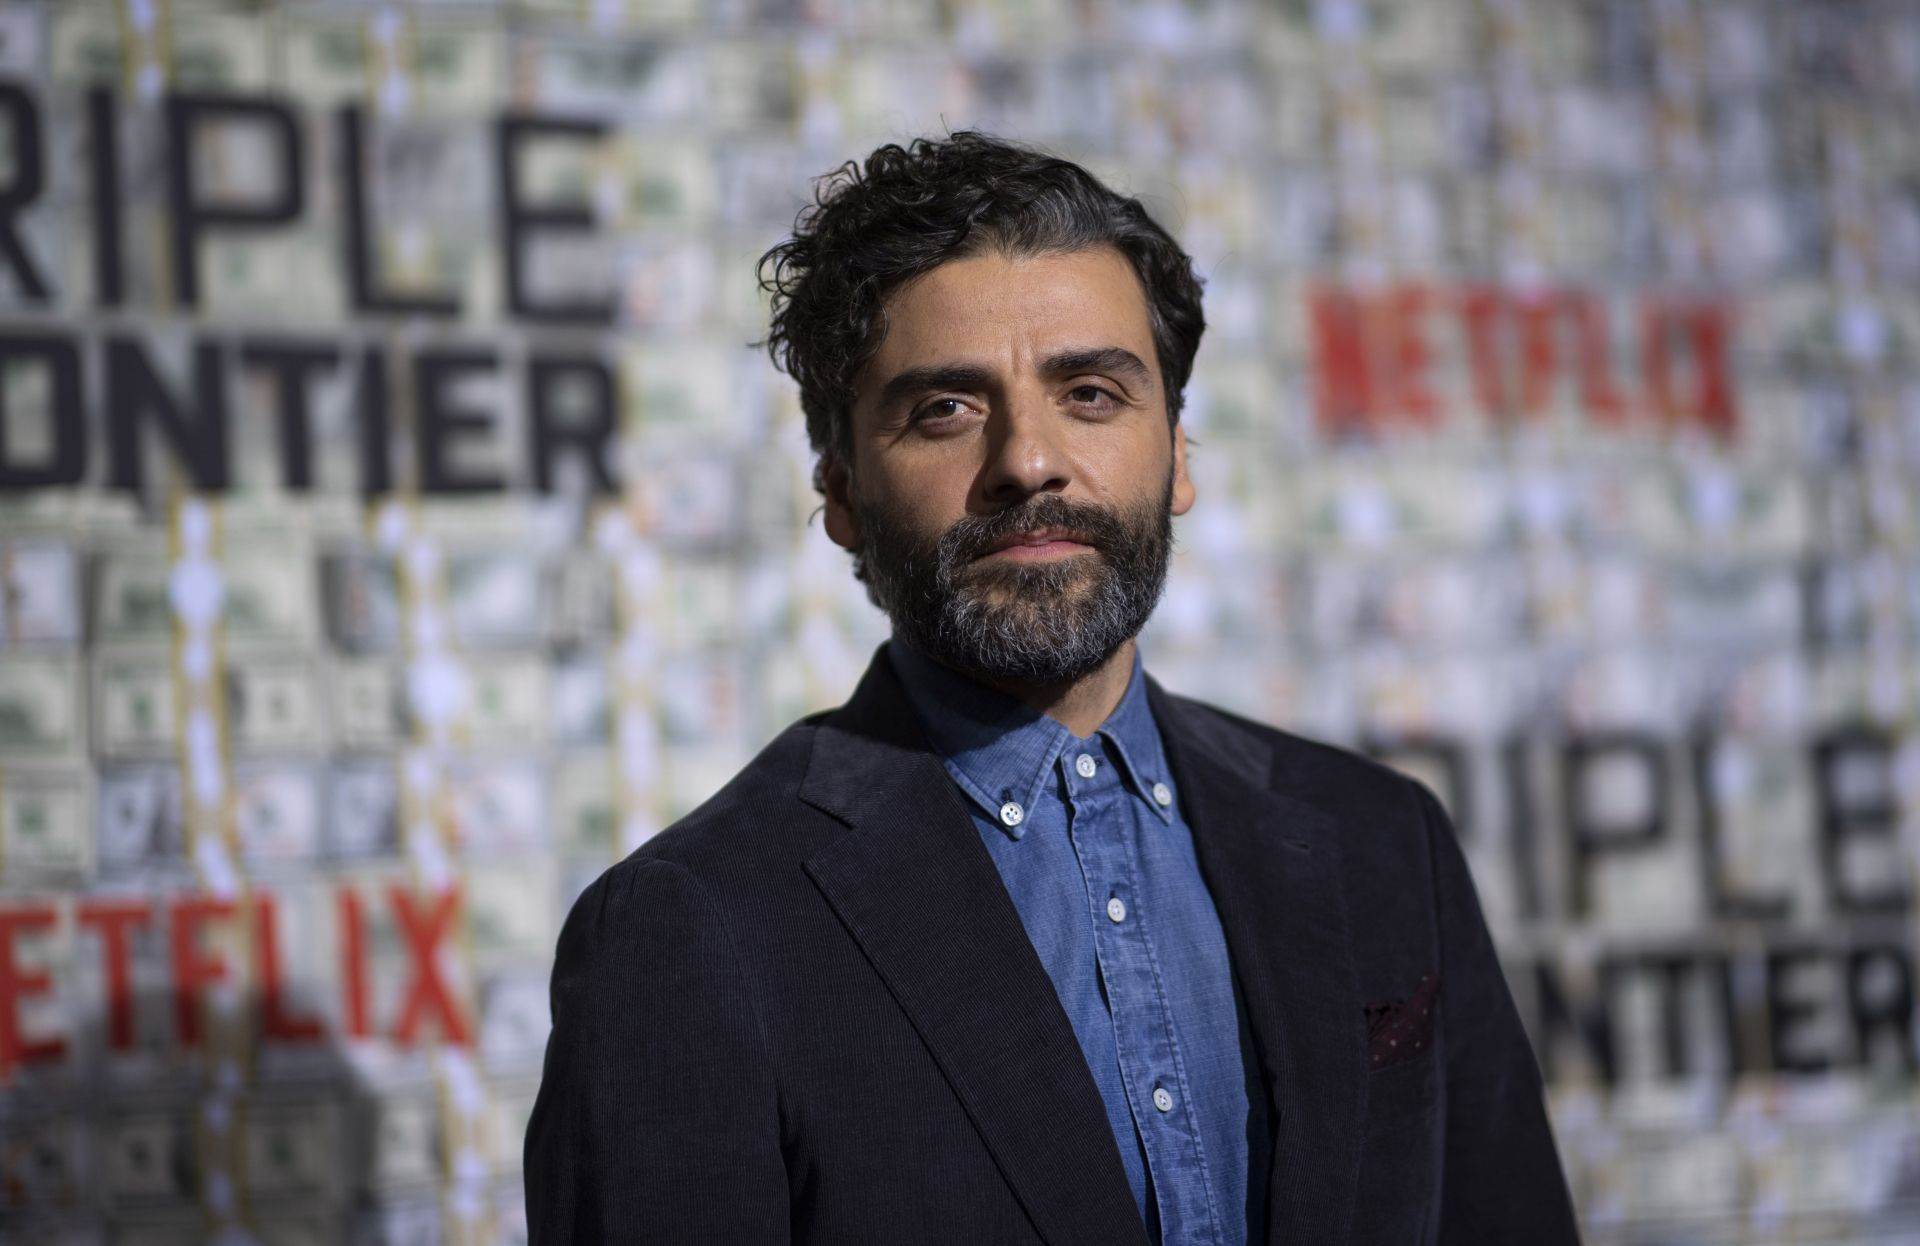 Actor Oscar Isaac at the world premiere of Triple Frontier on March 3 in New York City. u2014 AFP Relaxnews